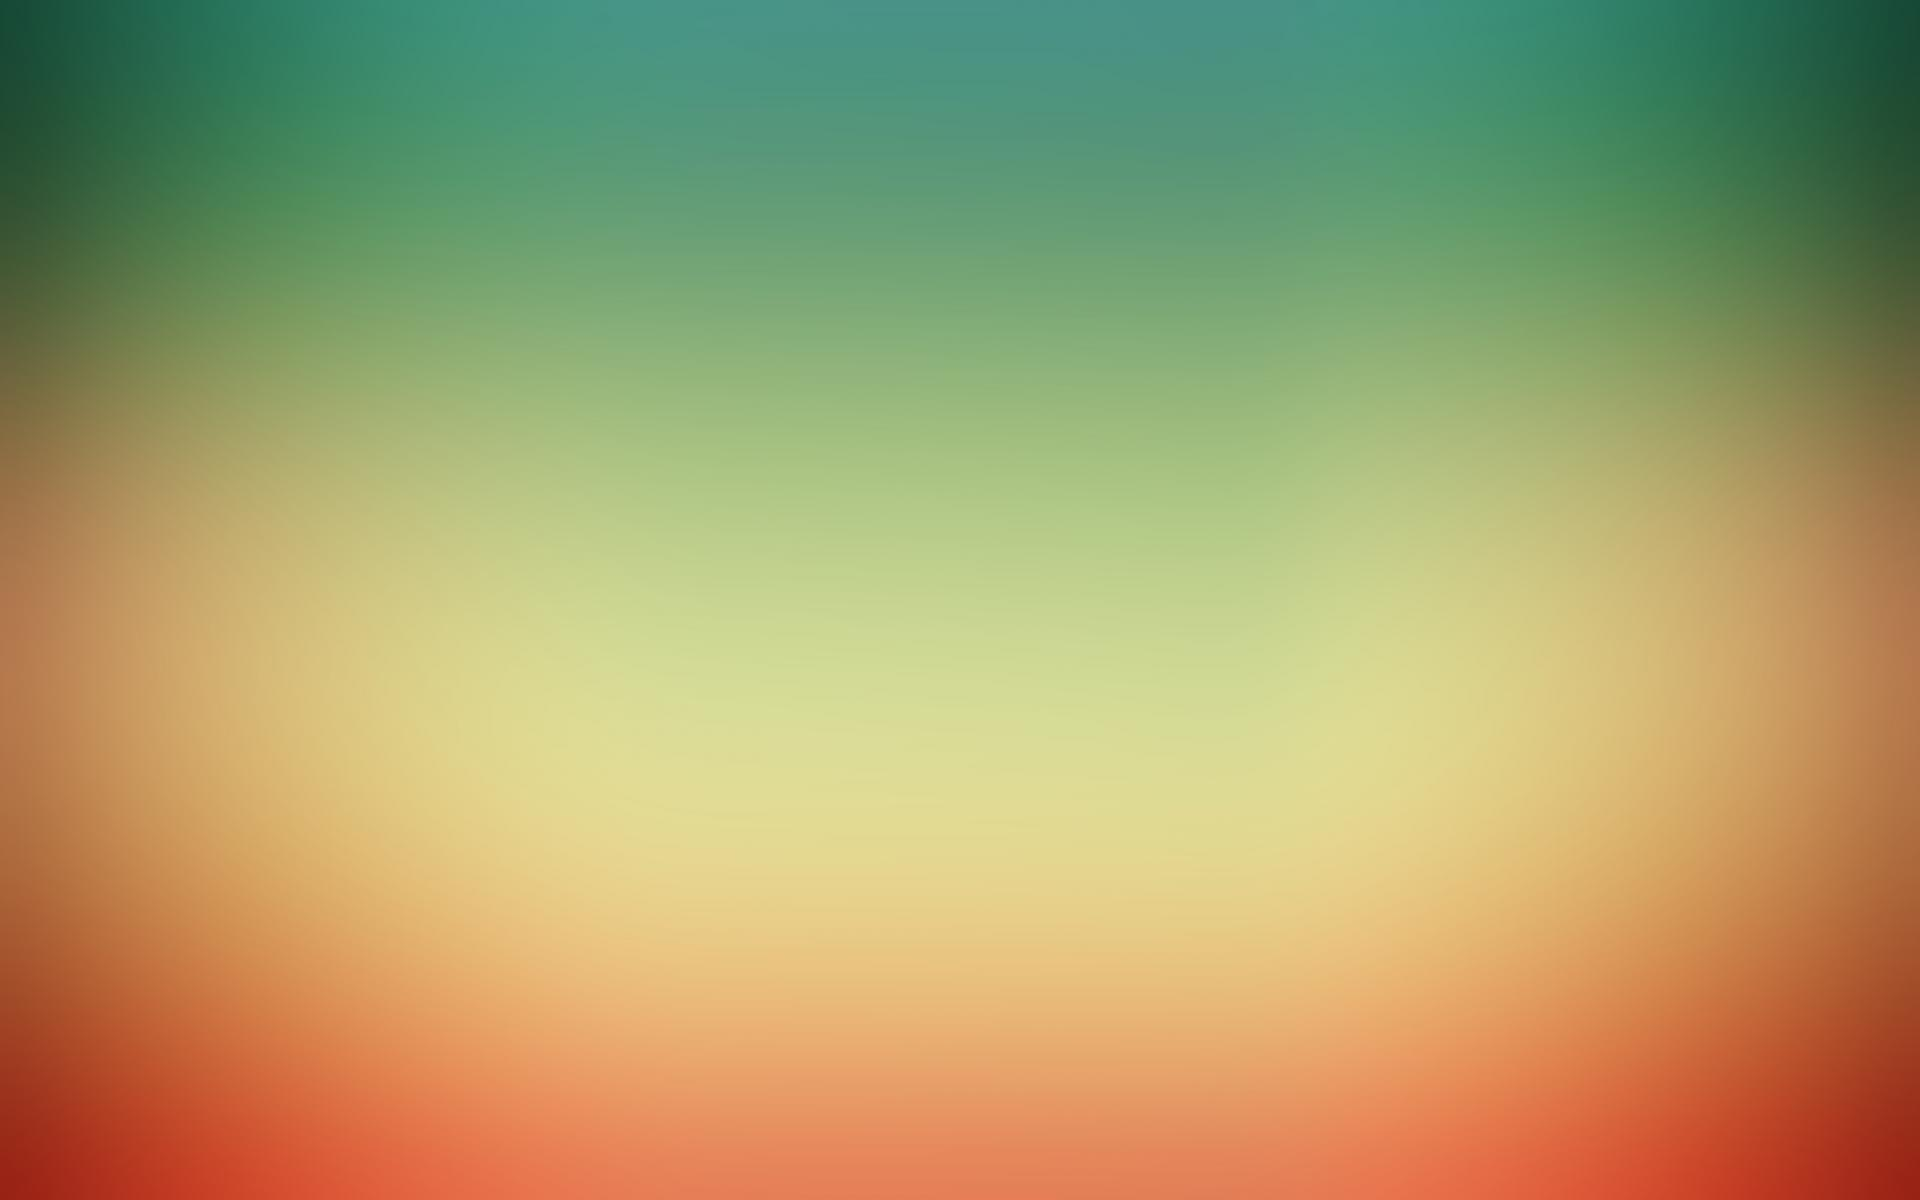 Color Gradient Wallpaper